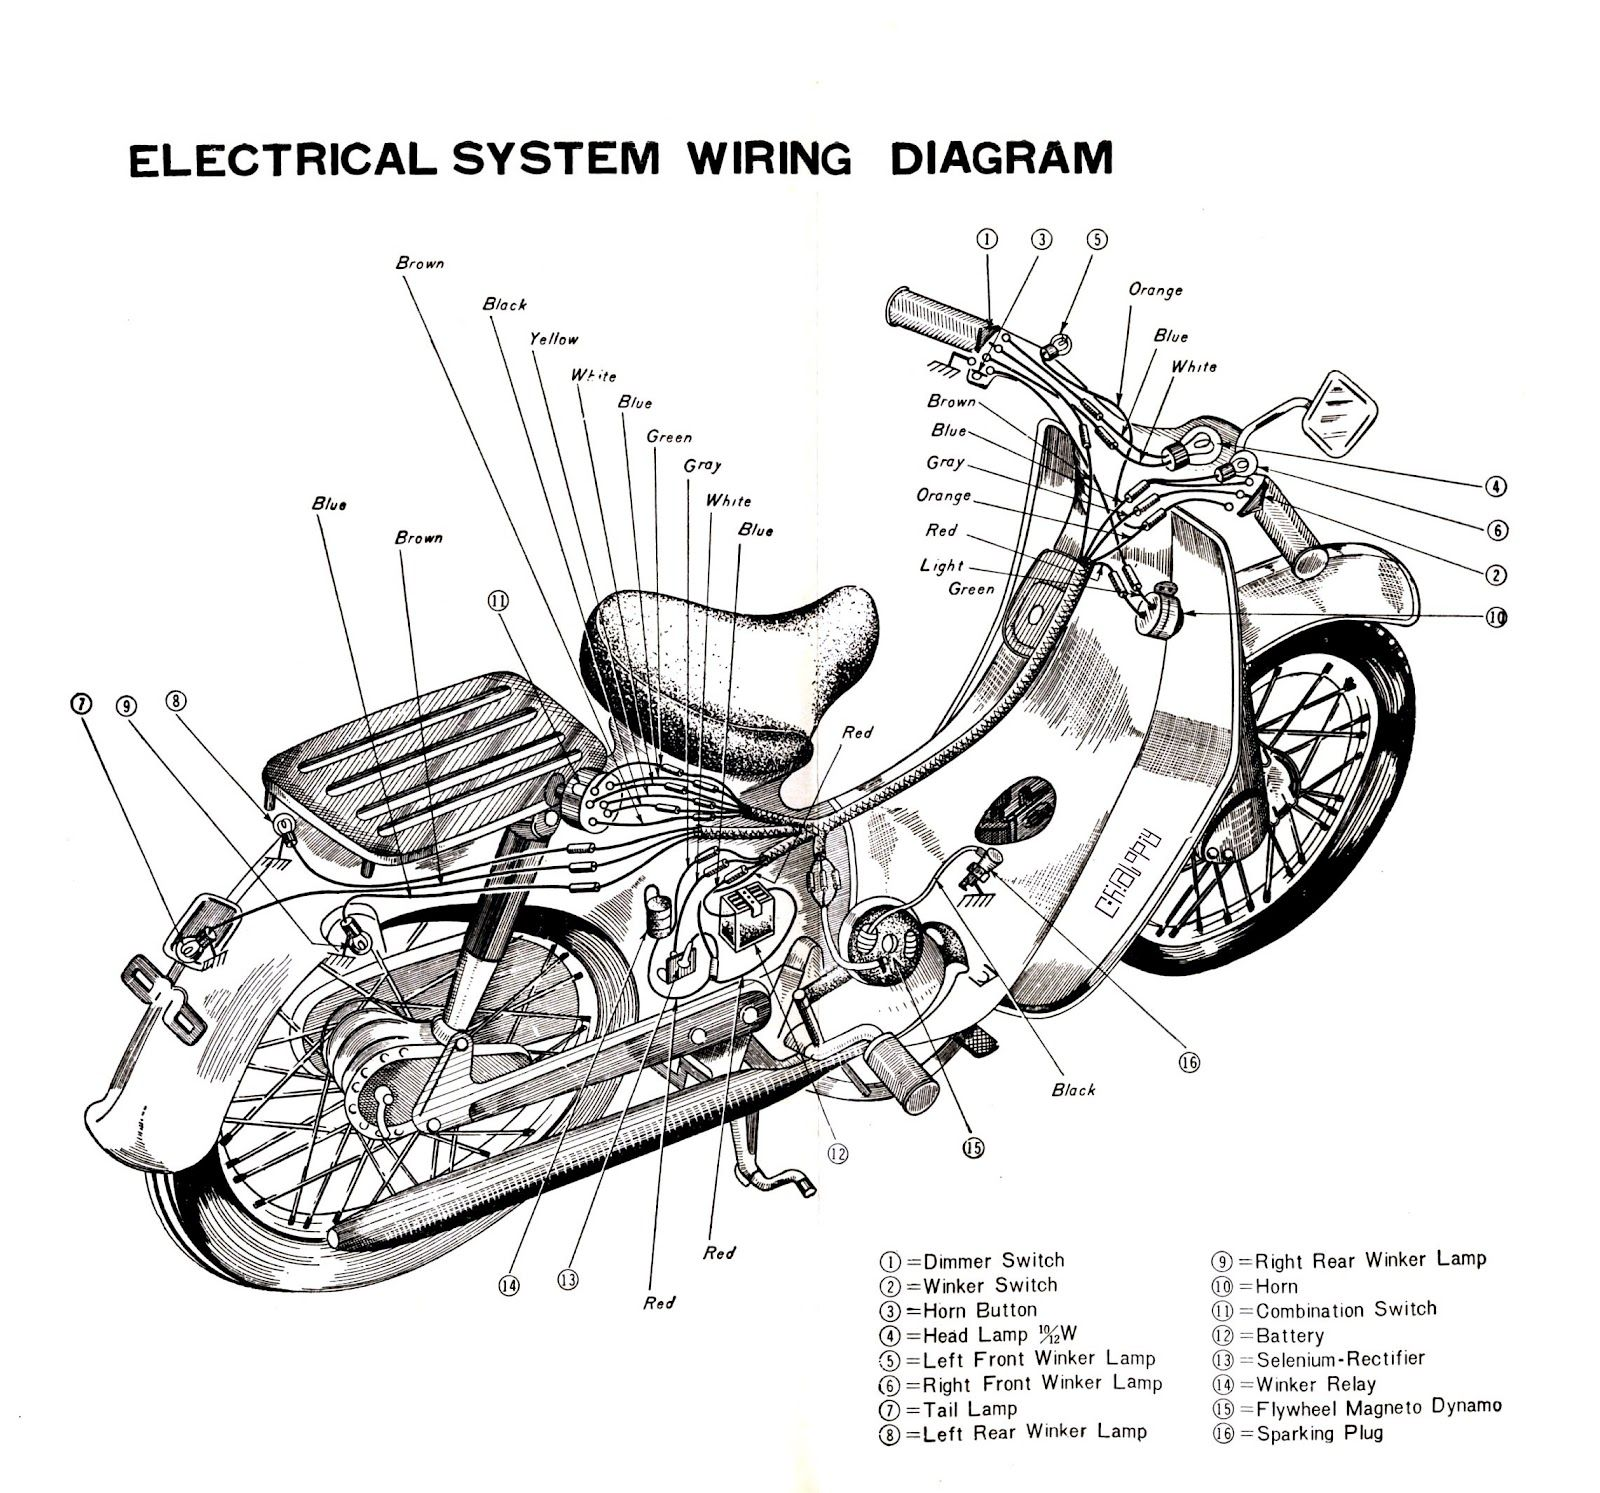 honda motorcycle crf230l wiring diagrams honda gx630 engine wiring diagrams super club electric wiring diagram | motorcycles | honda ... #14